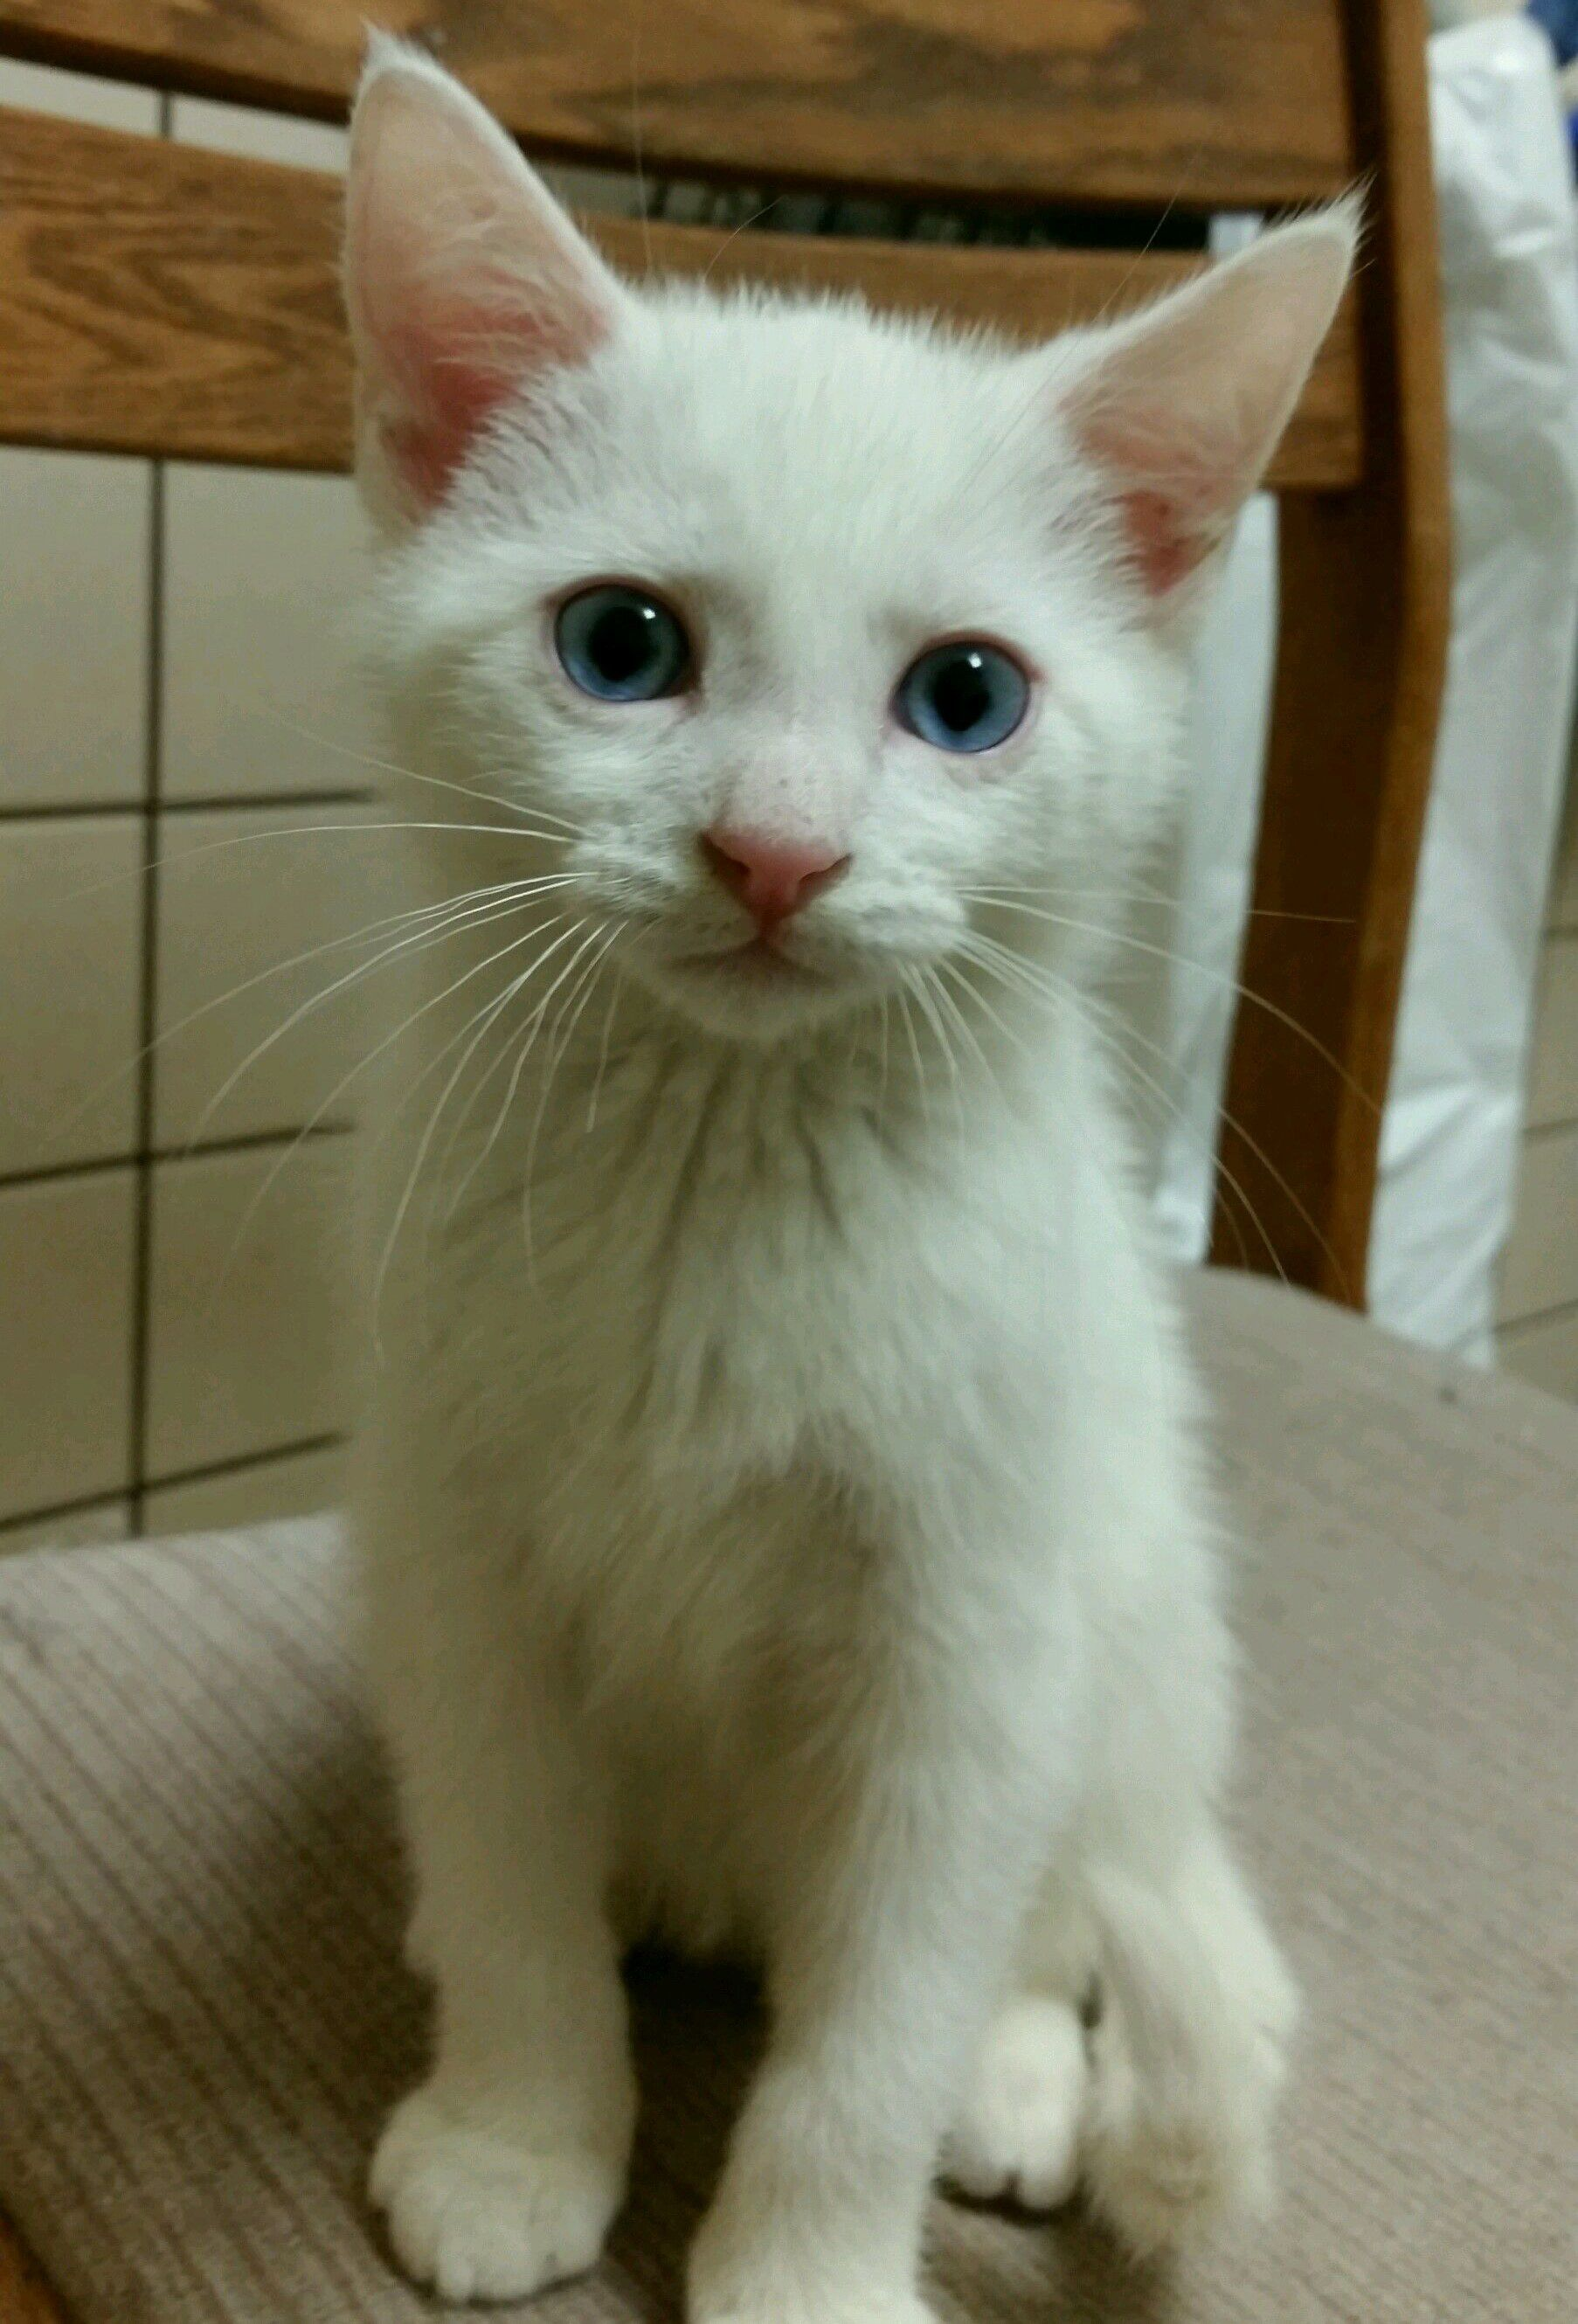 Smudge Is A 9 Week Old White Kitten With A Bit Of Black On His Head And Blue Eyes He S Friendly Curious And Has Been Kitten Adoption Cats And Kittens Kittens